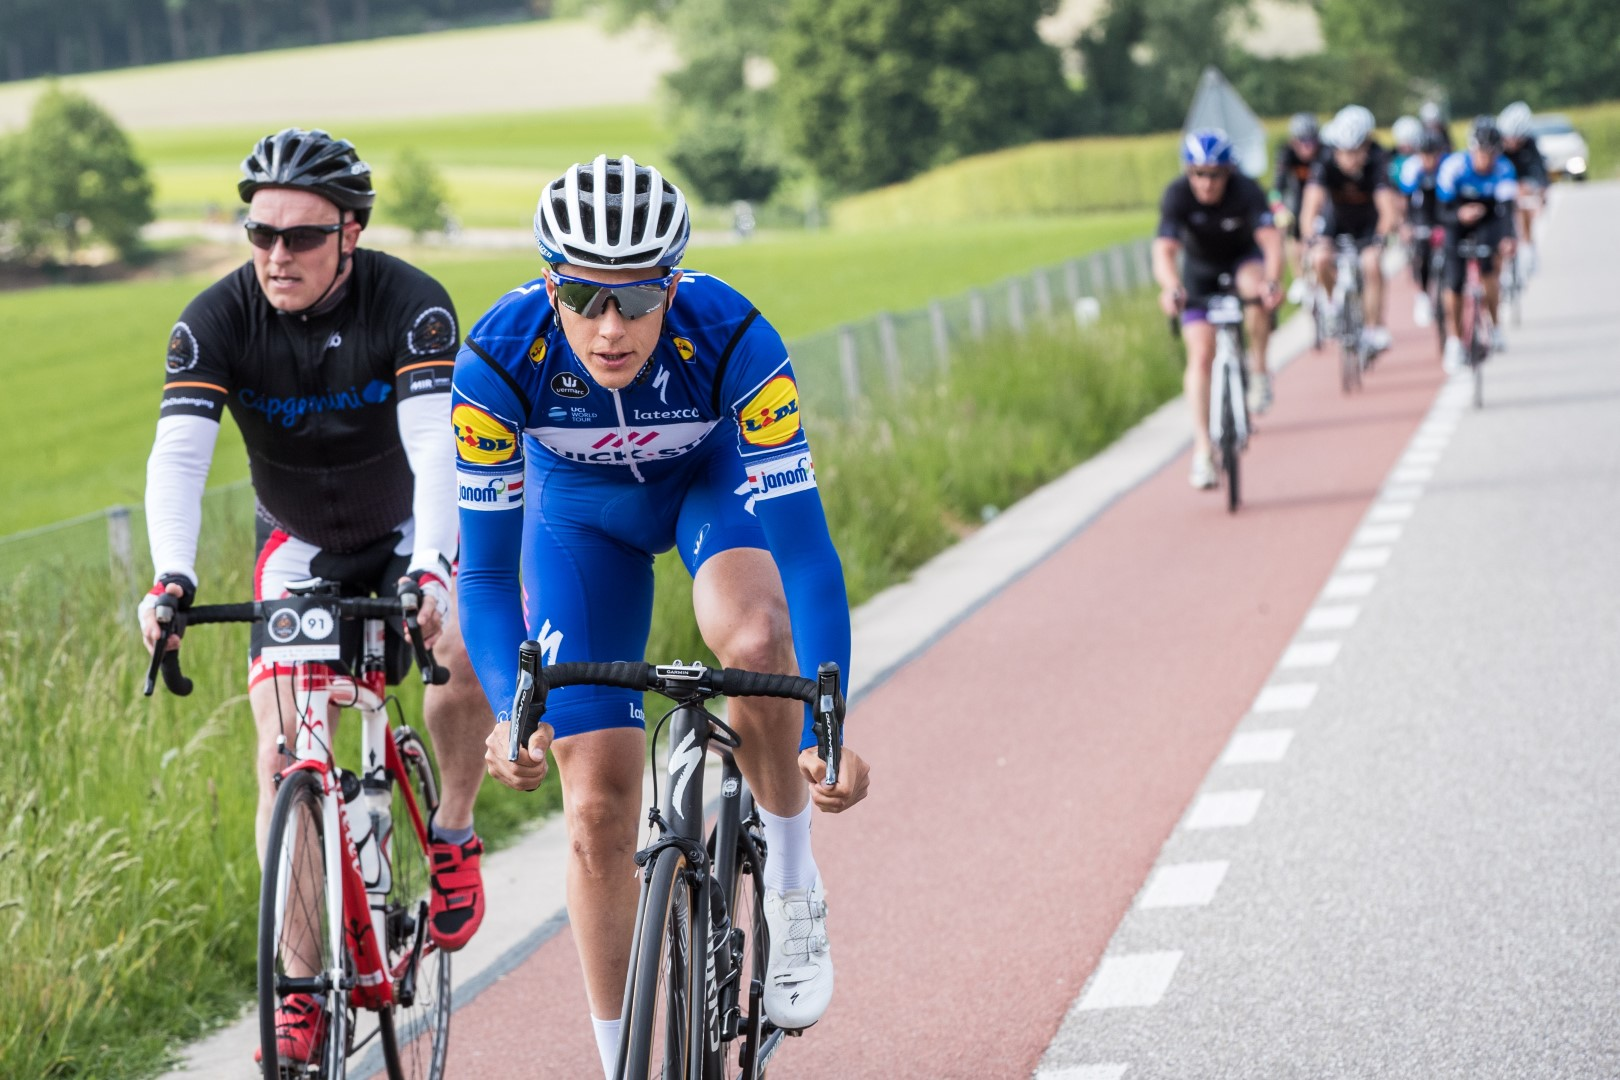 Niki_Terpstra_clinic_event